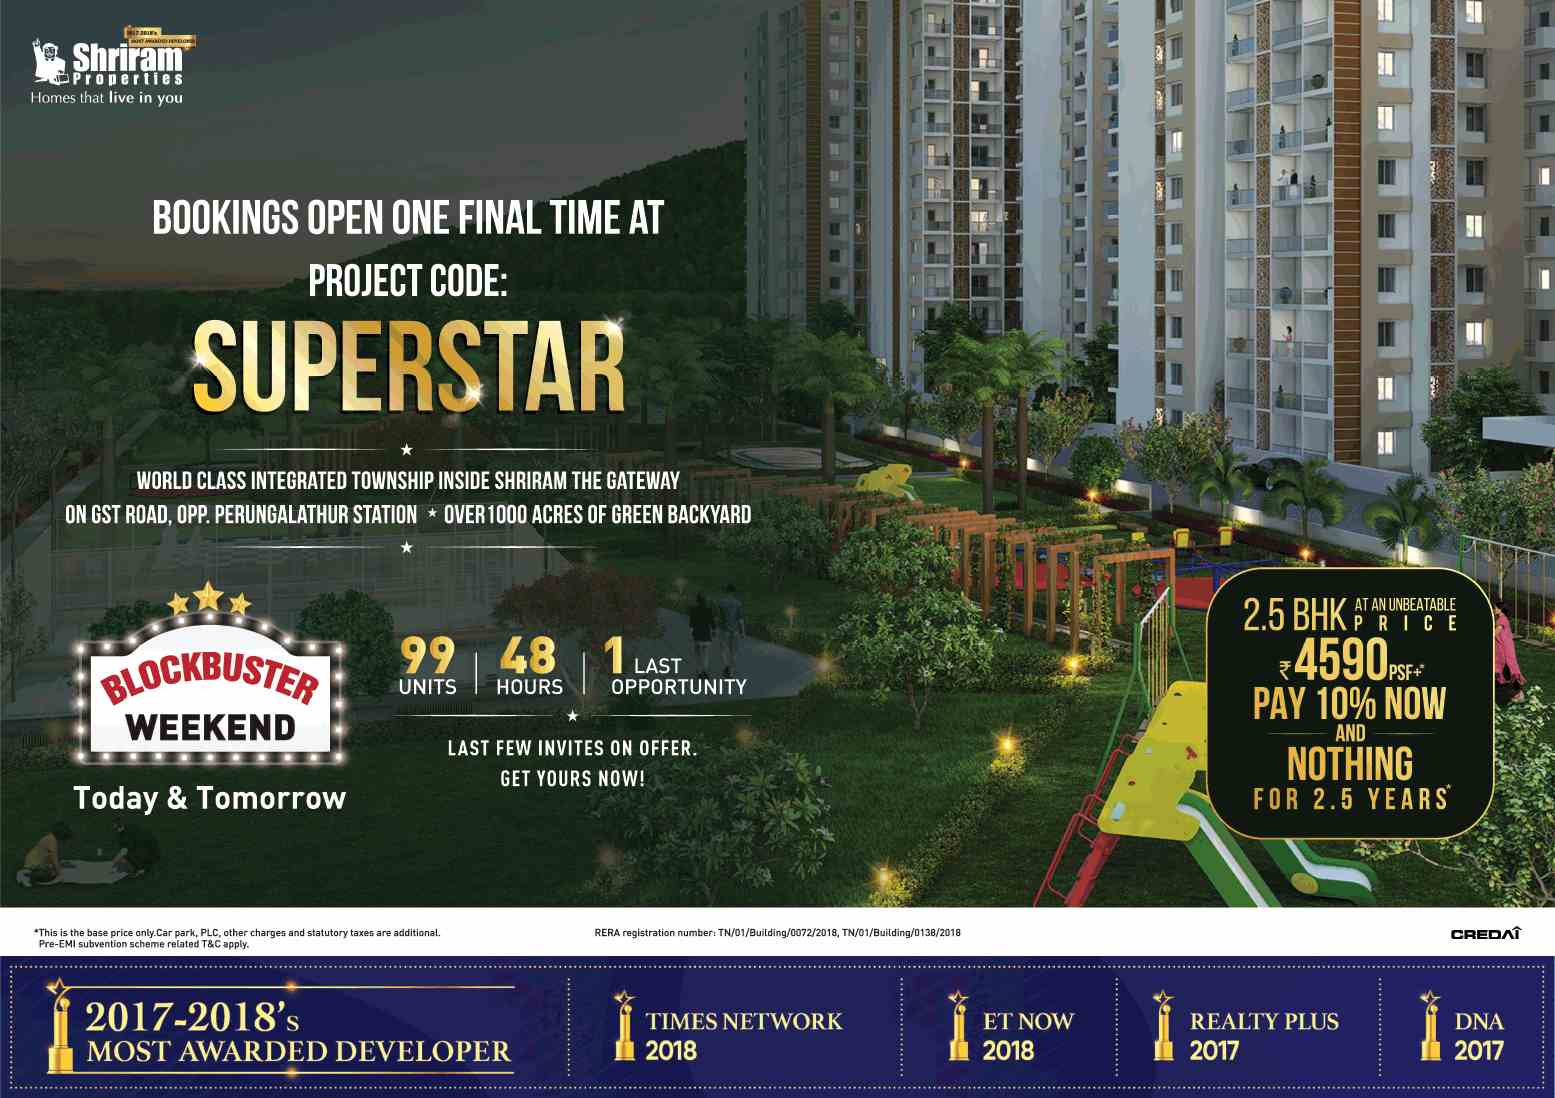 Pay 10 now and nothing for 2 5 years at Shriram Code Superstar in Chennai